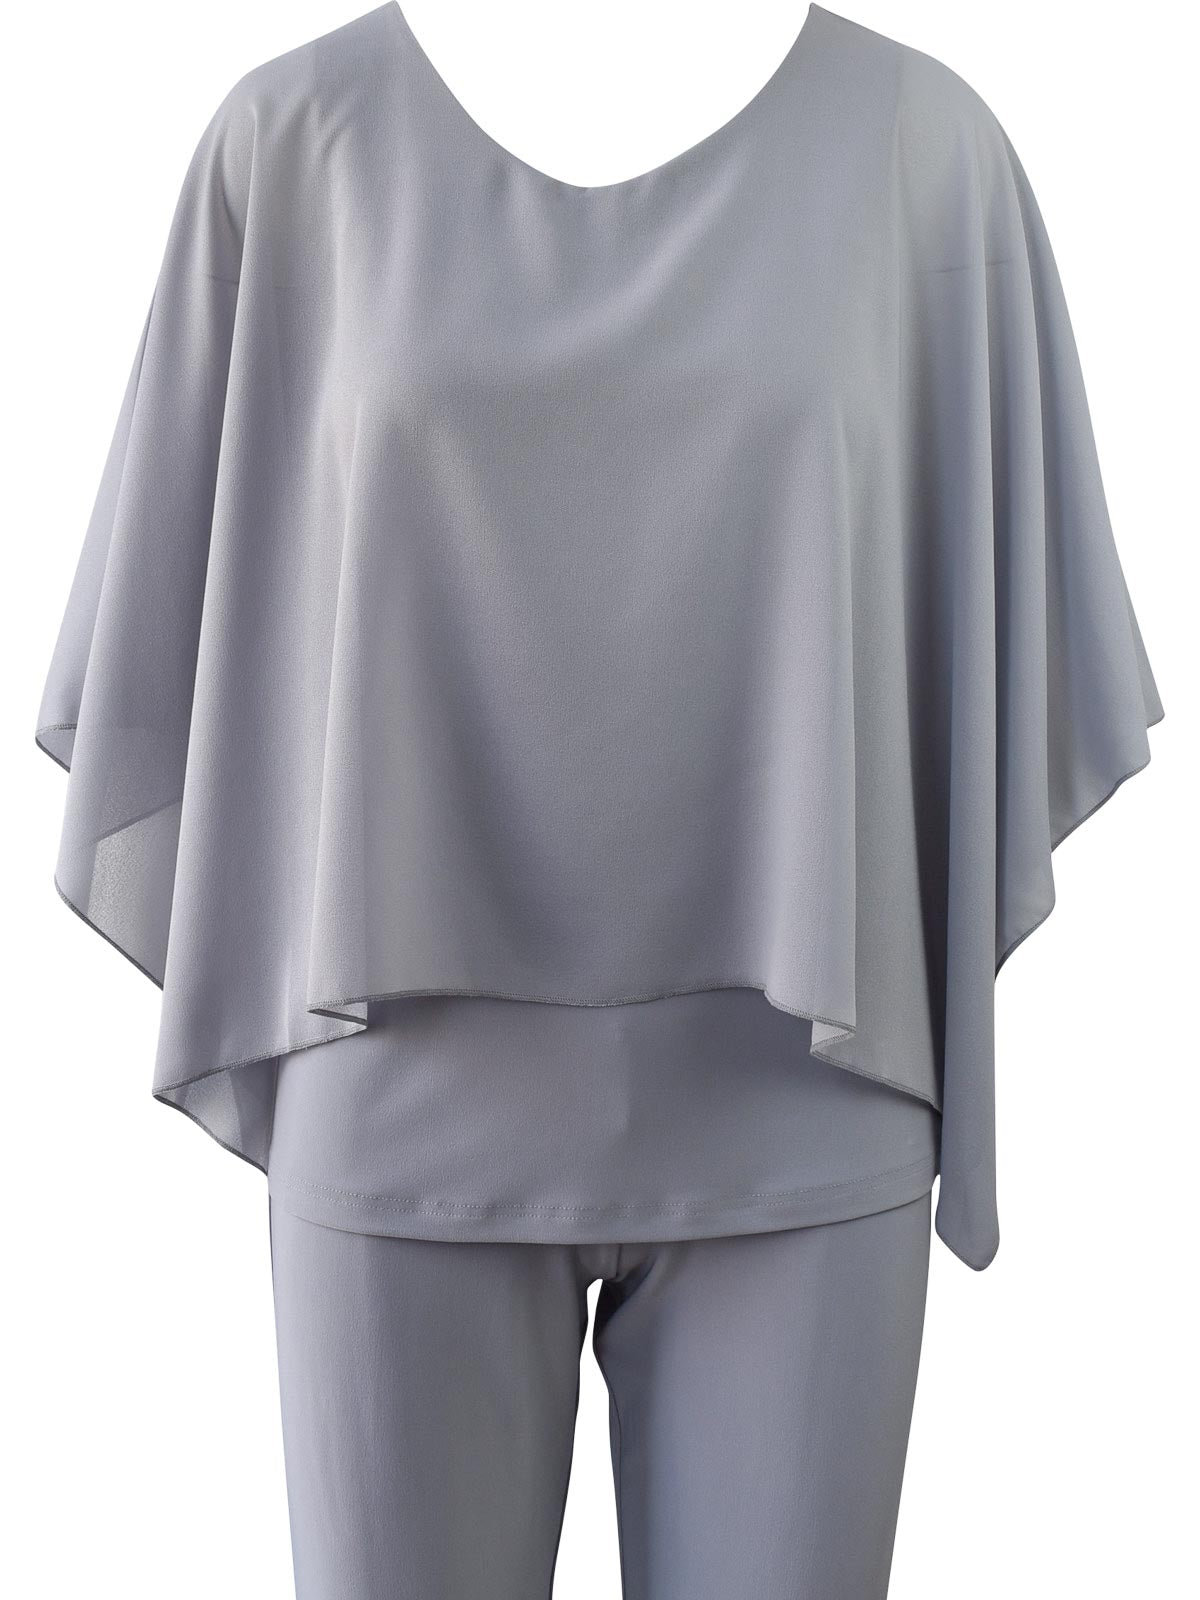 Sympli Whisper Boxy Top, Silver - Statement Boutique